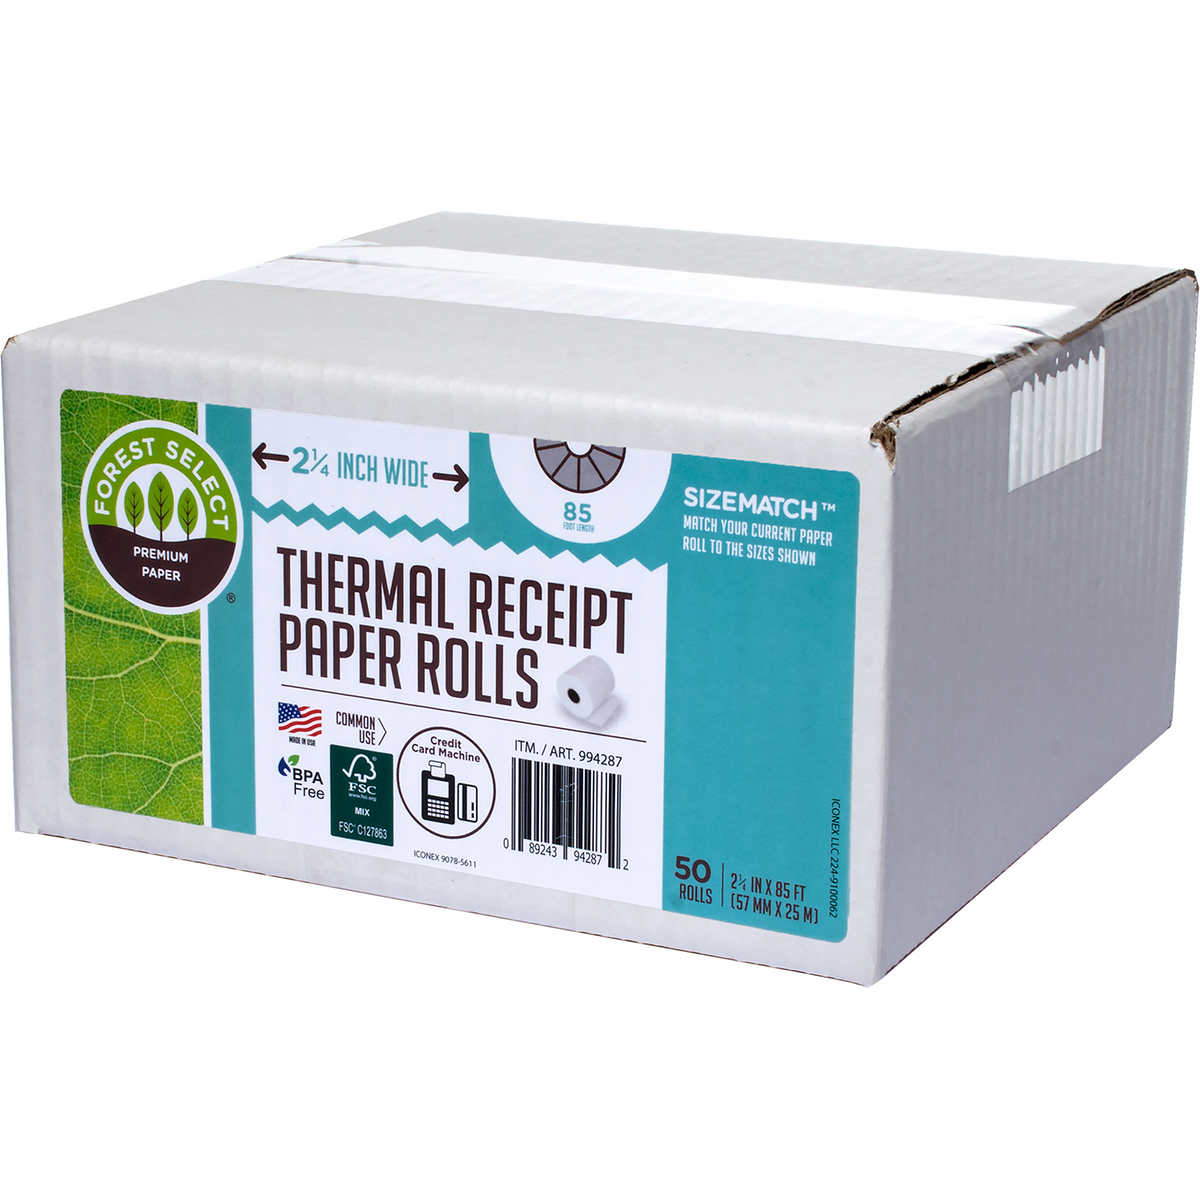 Forest Select Premium Thermal Receipt Paper Roll, White, 2-1